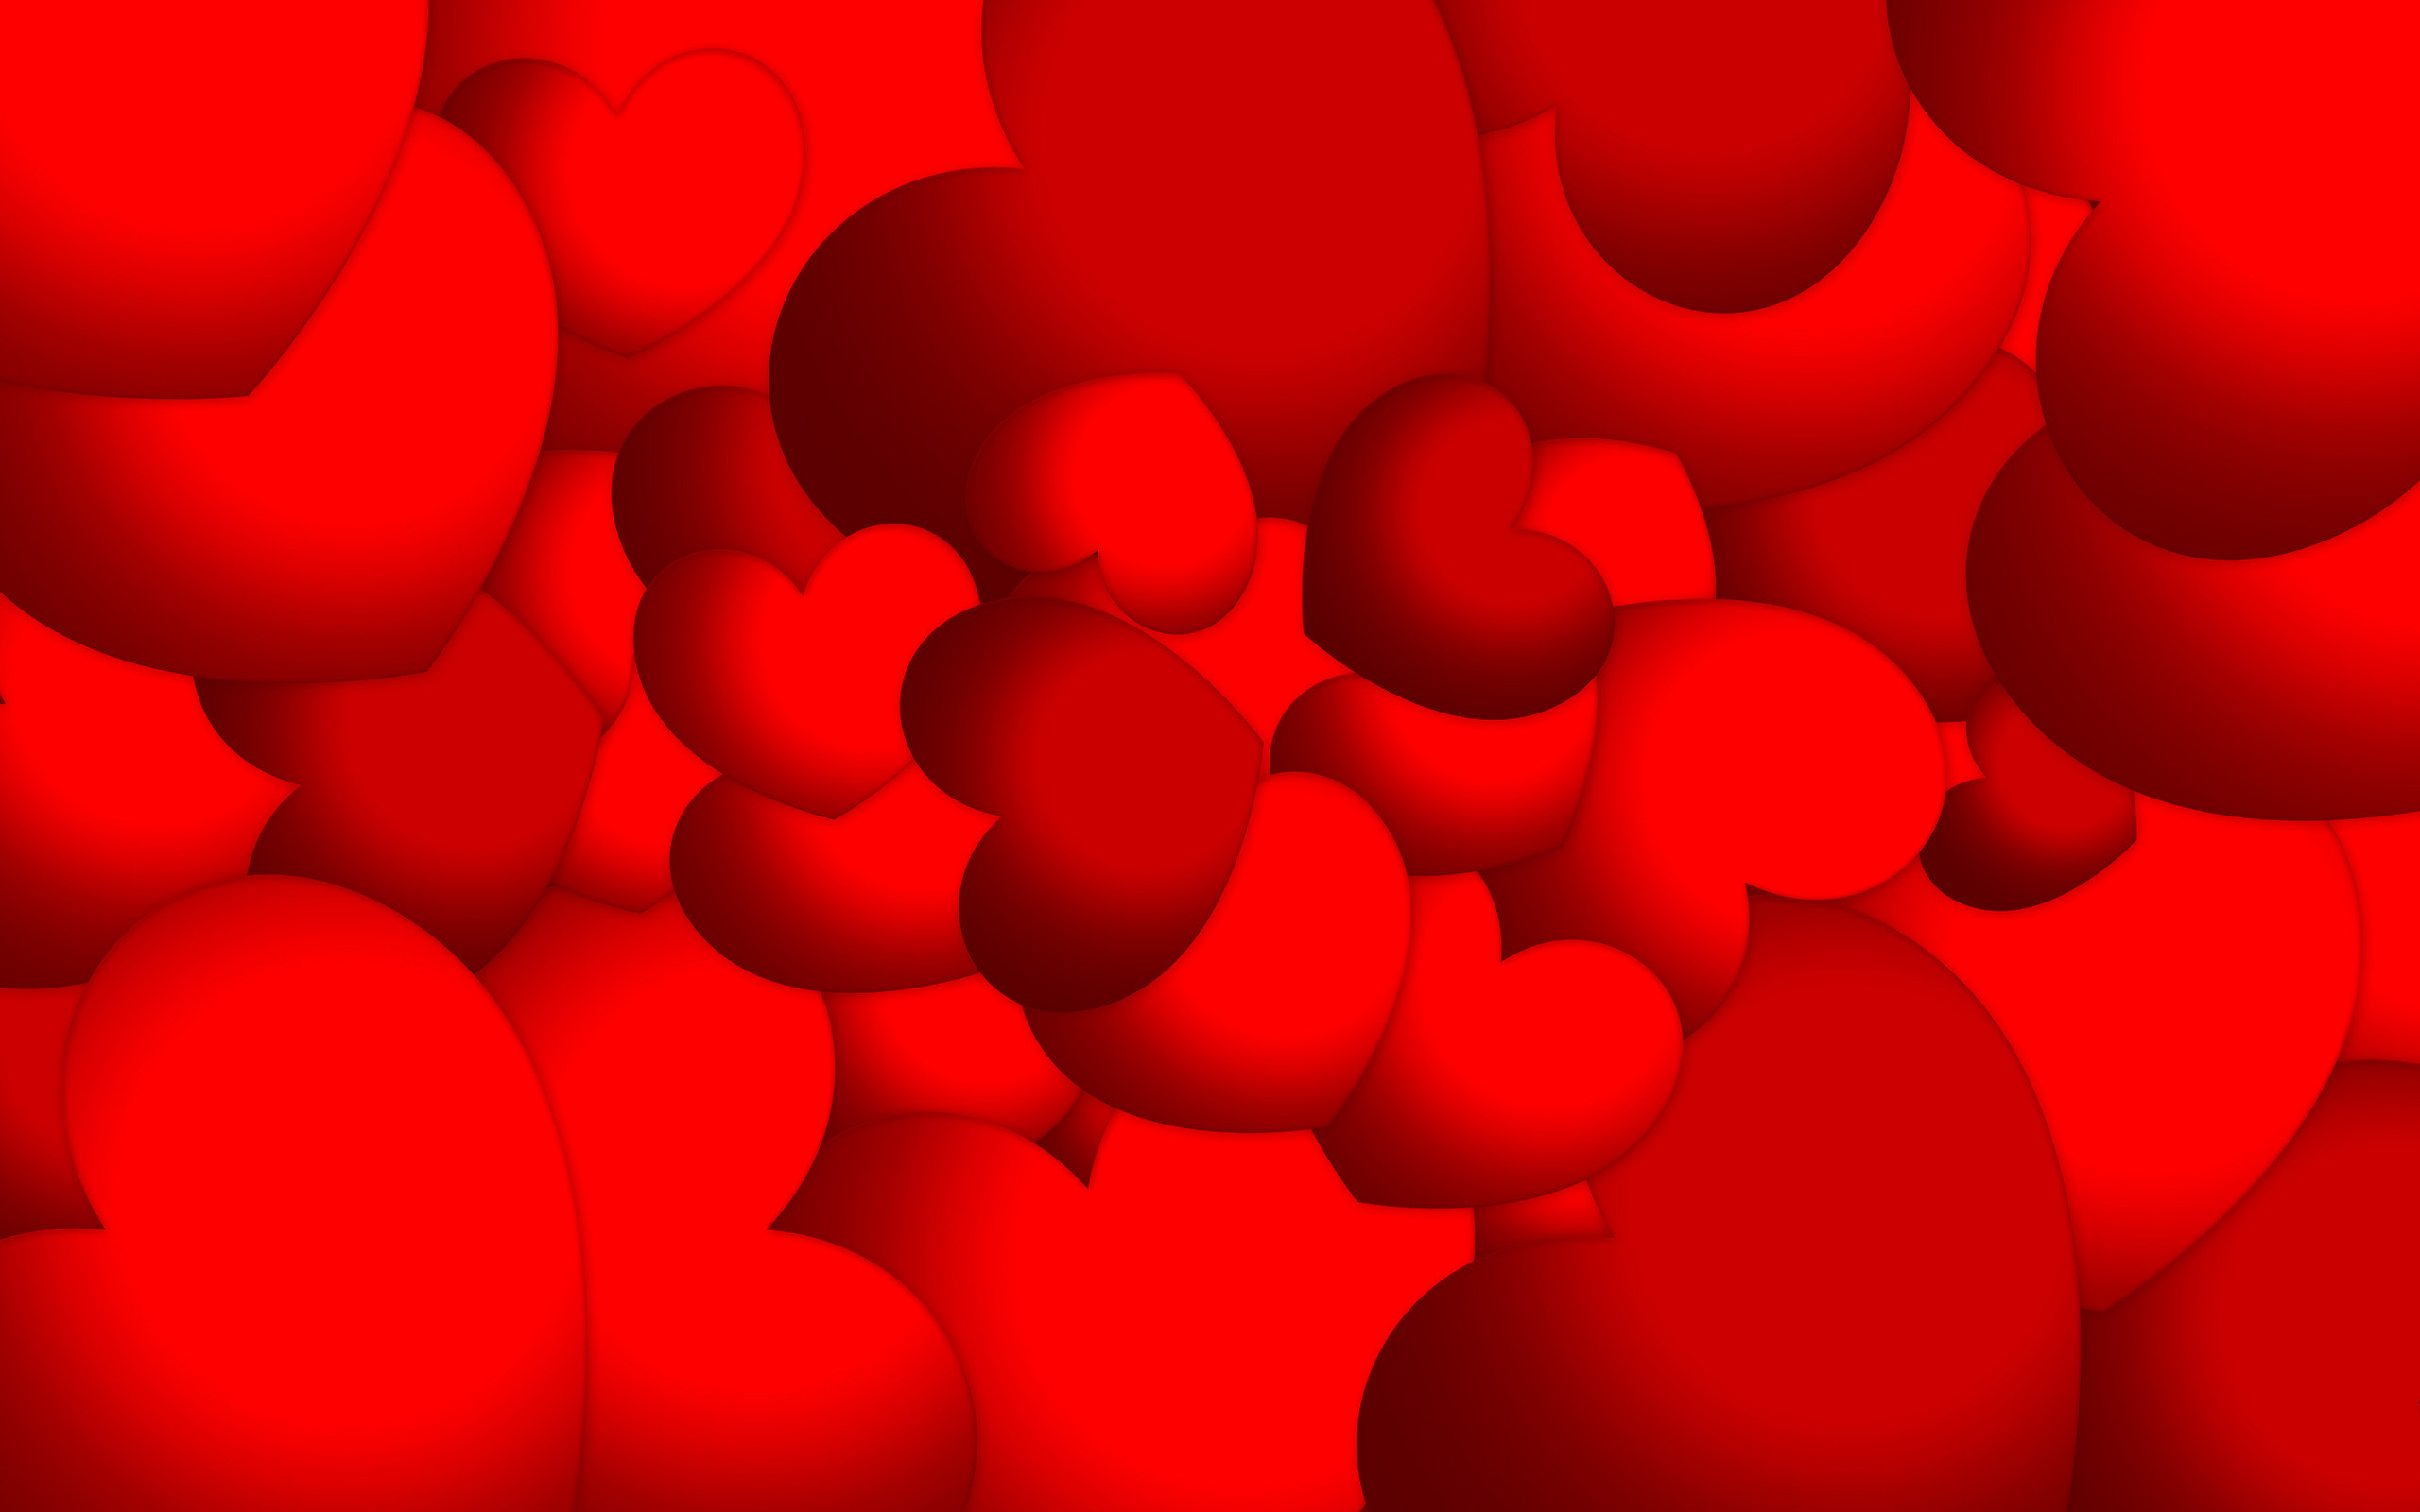 Res: 2560x1600, Red hearts wallpaper 17344